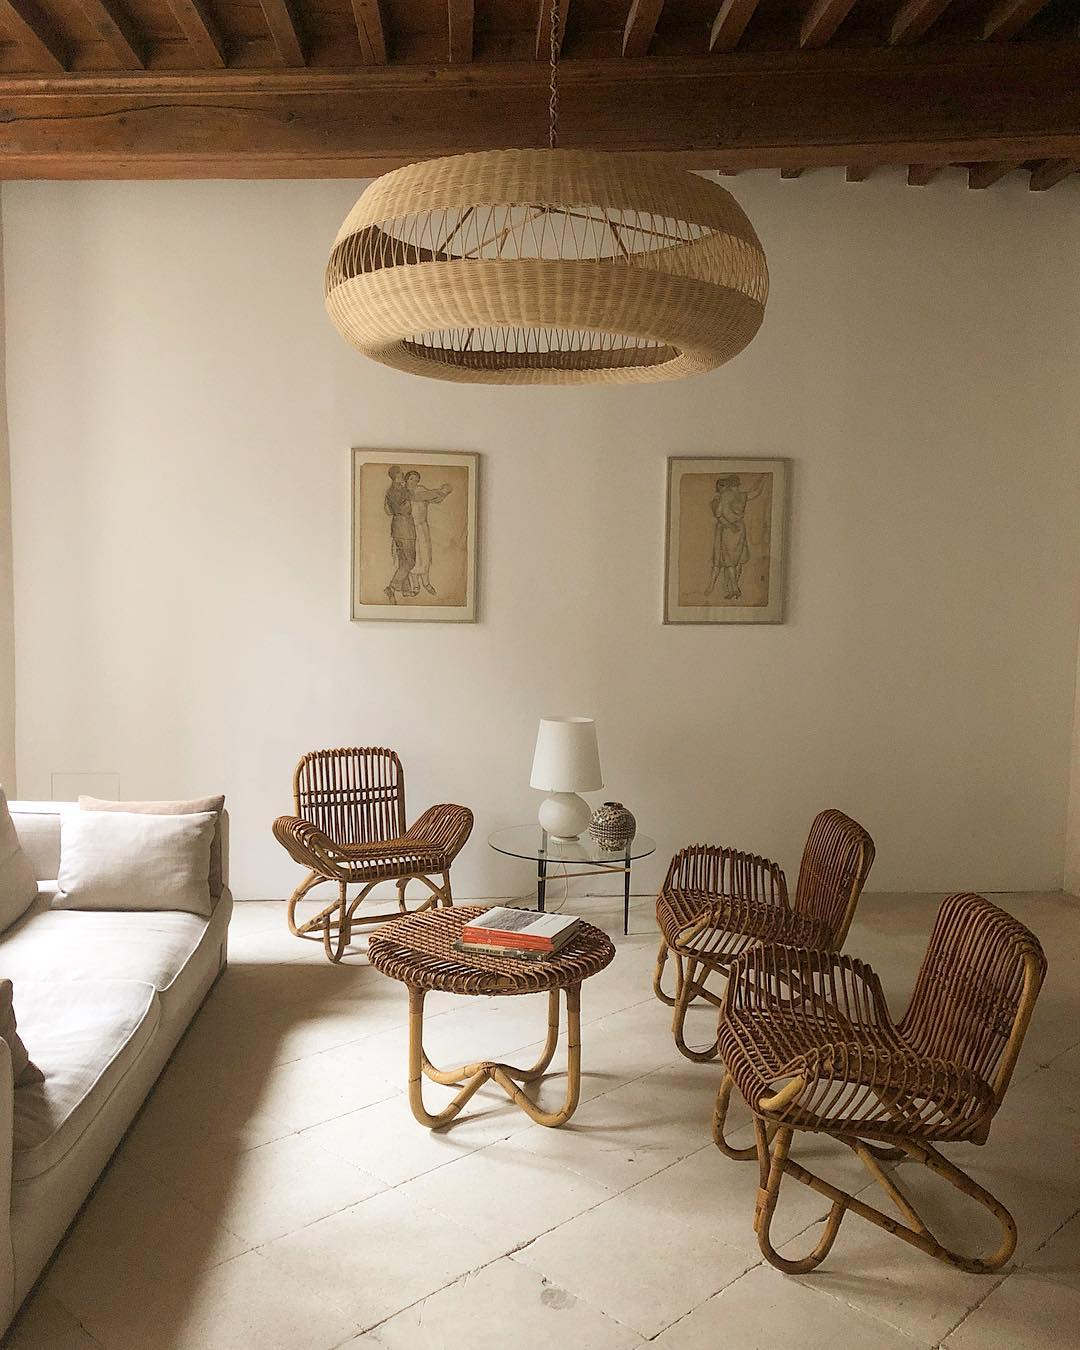 Atelier Vime - traditionally handcrafted rattan and wicker in modern shapes. Featured, the Aramis pendant.